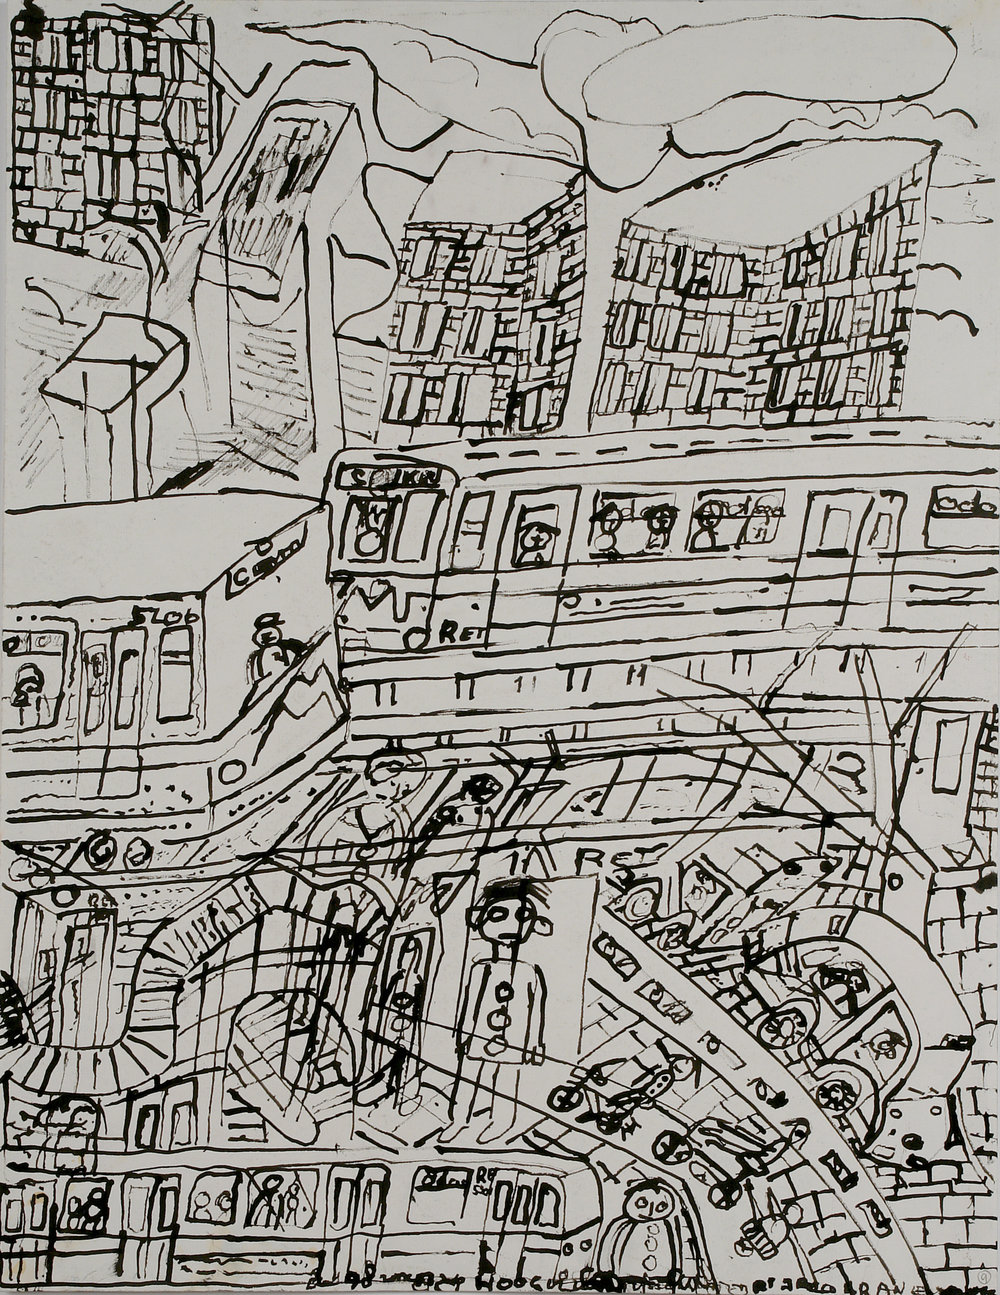 Jaco Kranendonk (Dutch, b. 1951).  Metro naar Wijnhaven (Subway to Wijnhaven) , ca. 1998. Ink on paper, 25 ½ x 19 7/8 in. Intuit: The Center for Intuitive and Outsider Art, gift of Galerie Atelier Herenplaats, Rotterdam, Netherlands, 2004.43.13